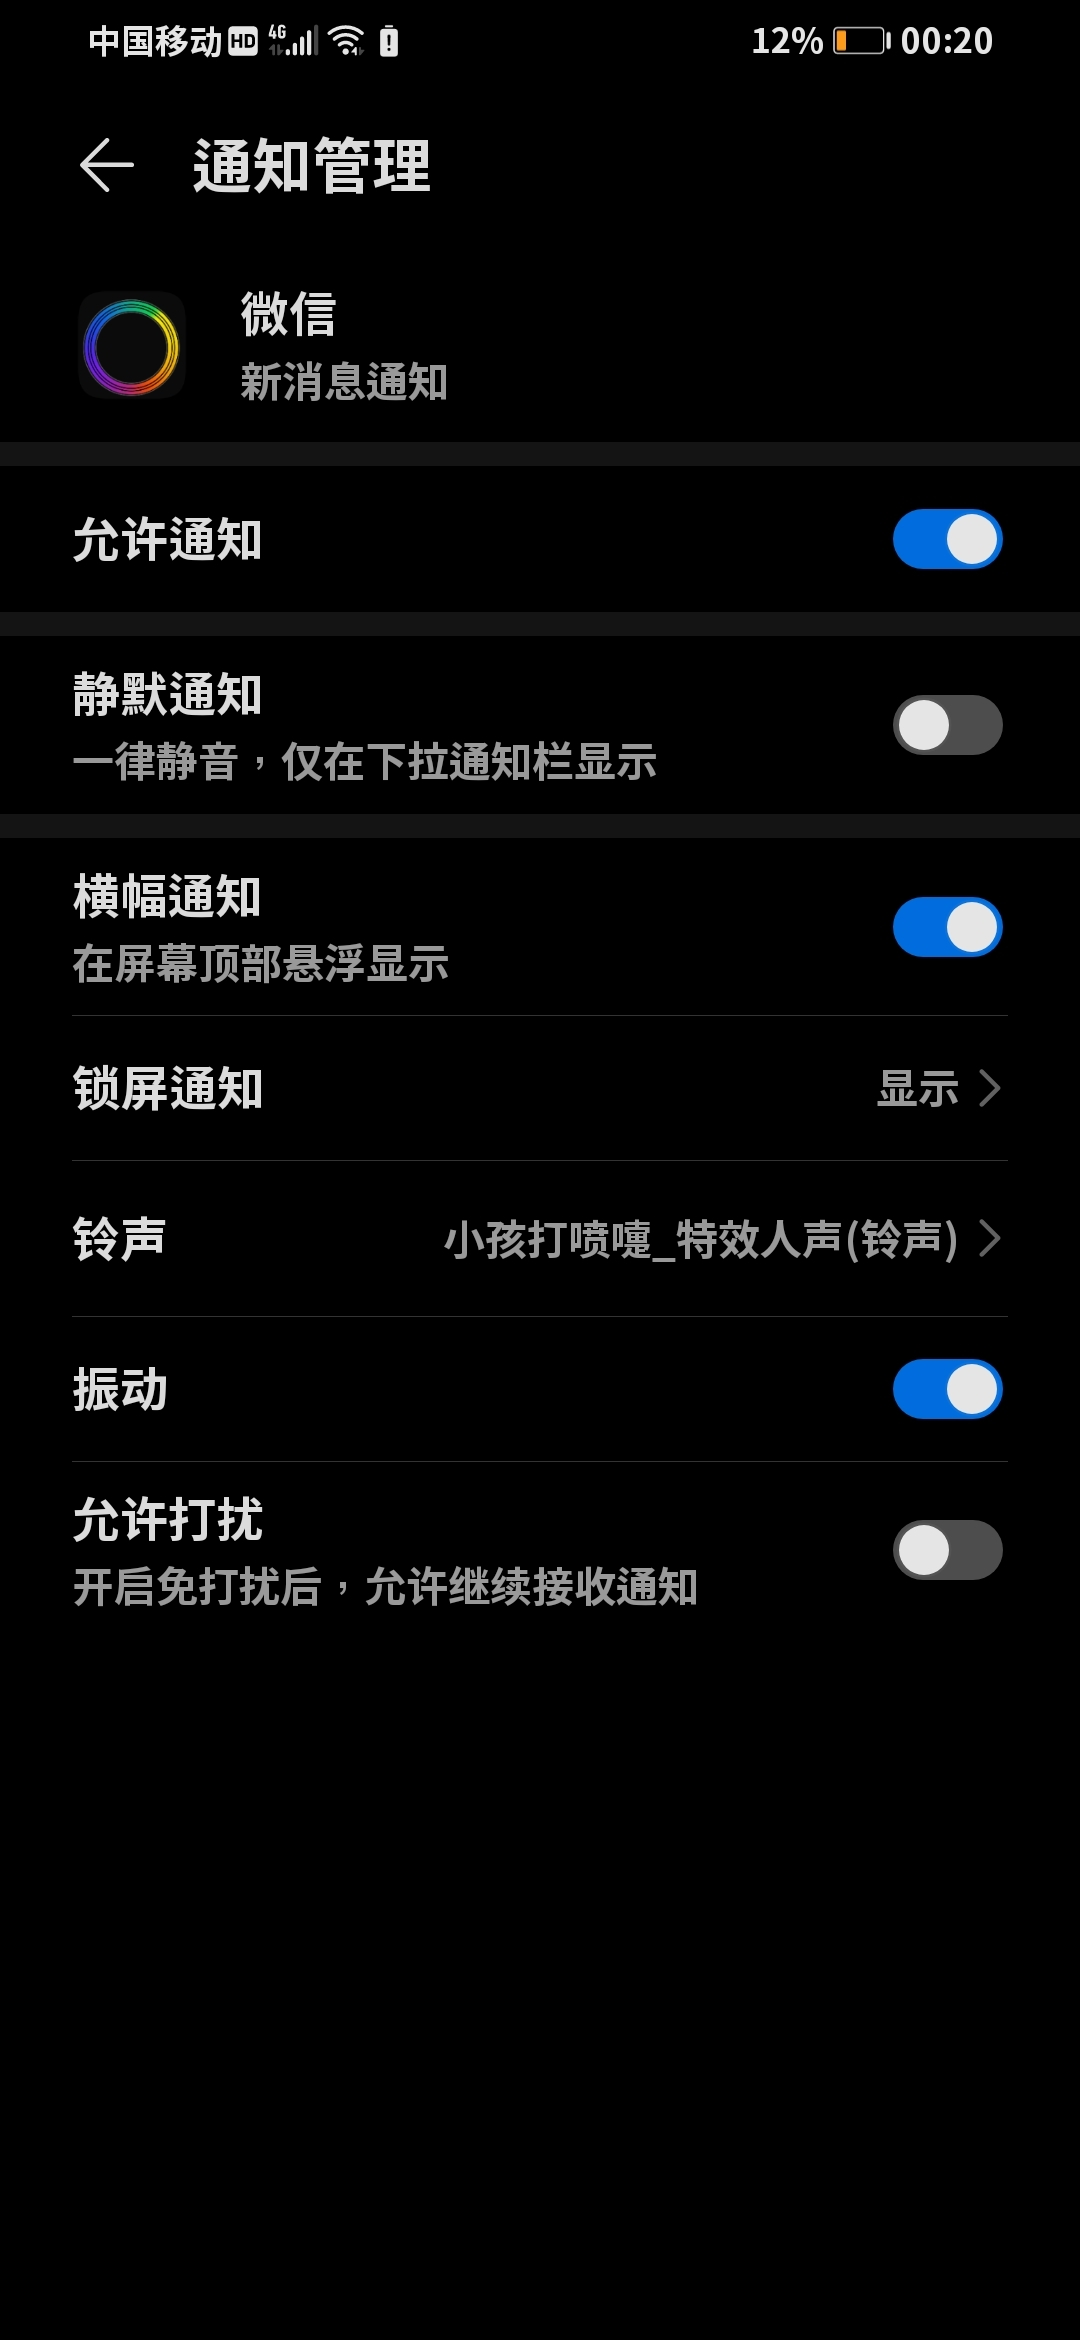 Screenshot_20200523_002052_com.huawei.systemmanager.jpg